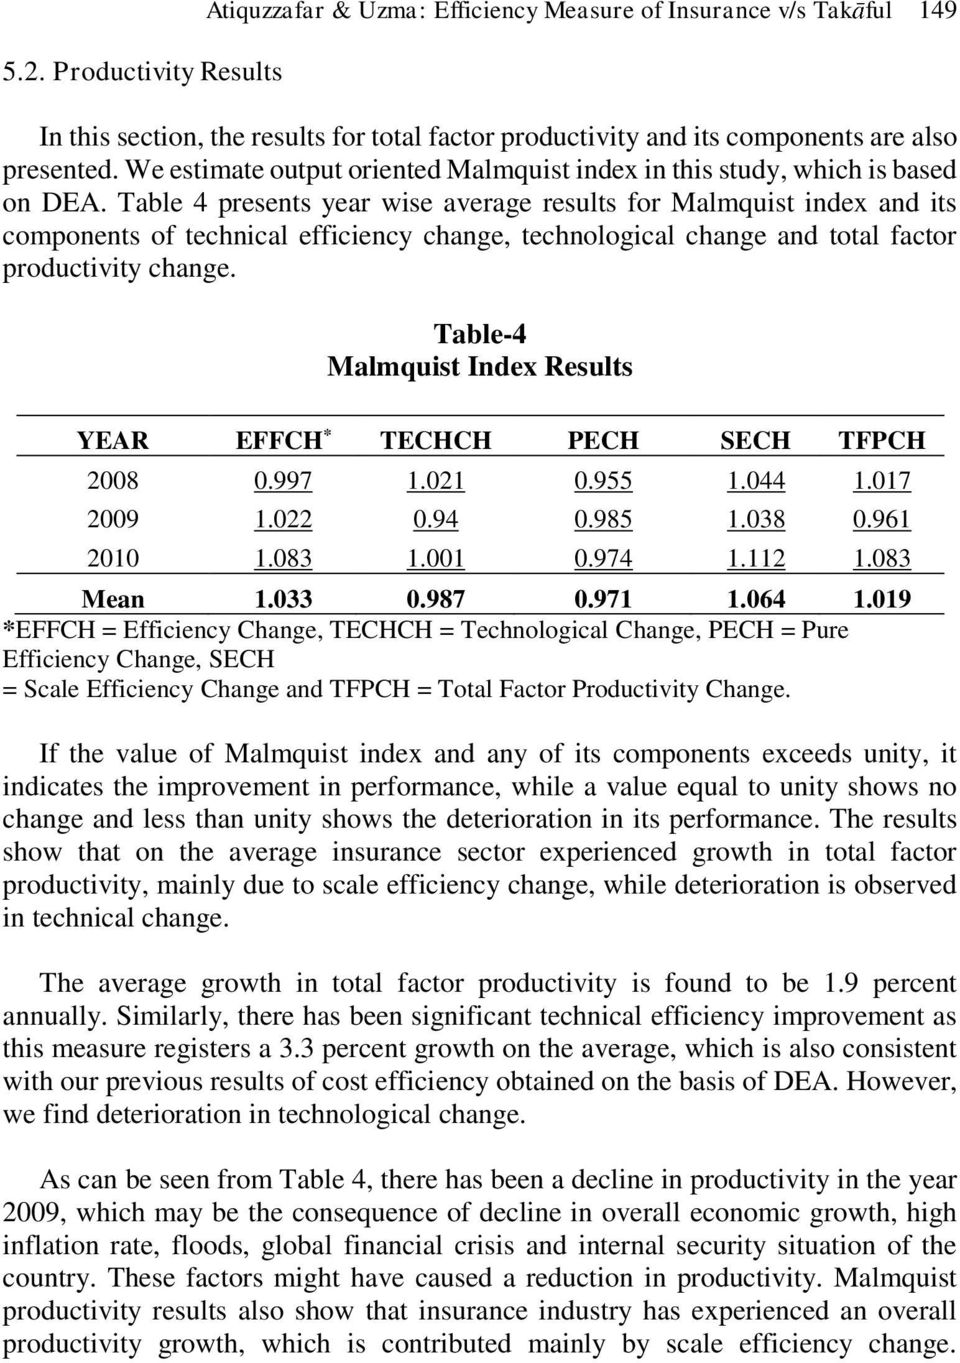 Table 4 presents year wise average results for Malmquist index and its components of technical efficiency change, technological change and total factor productivity change.